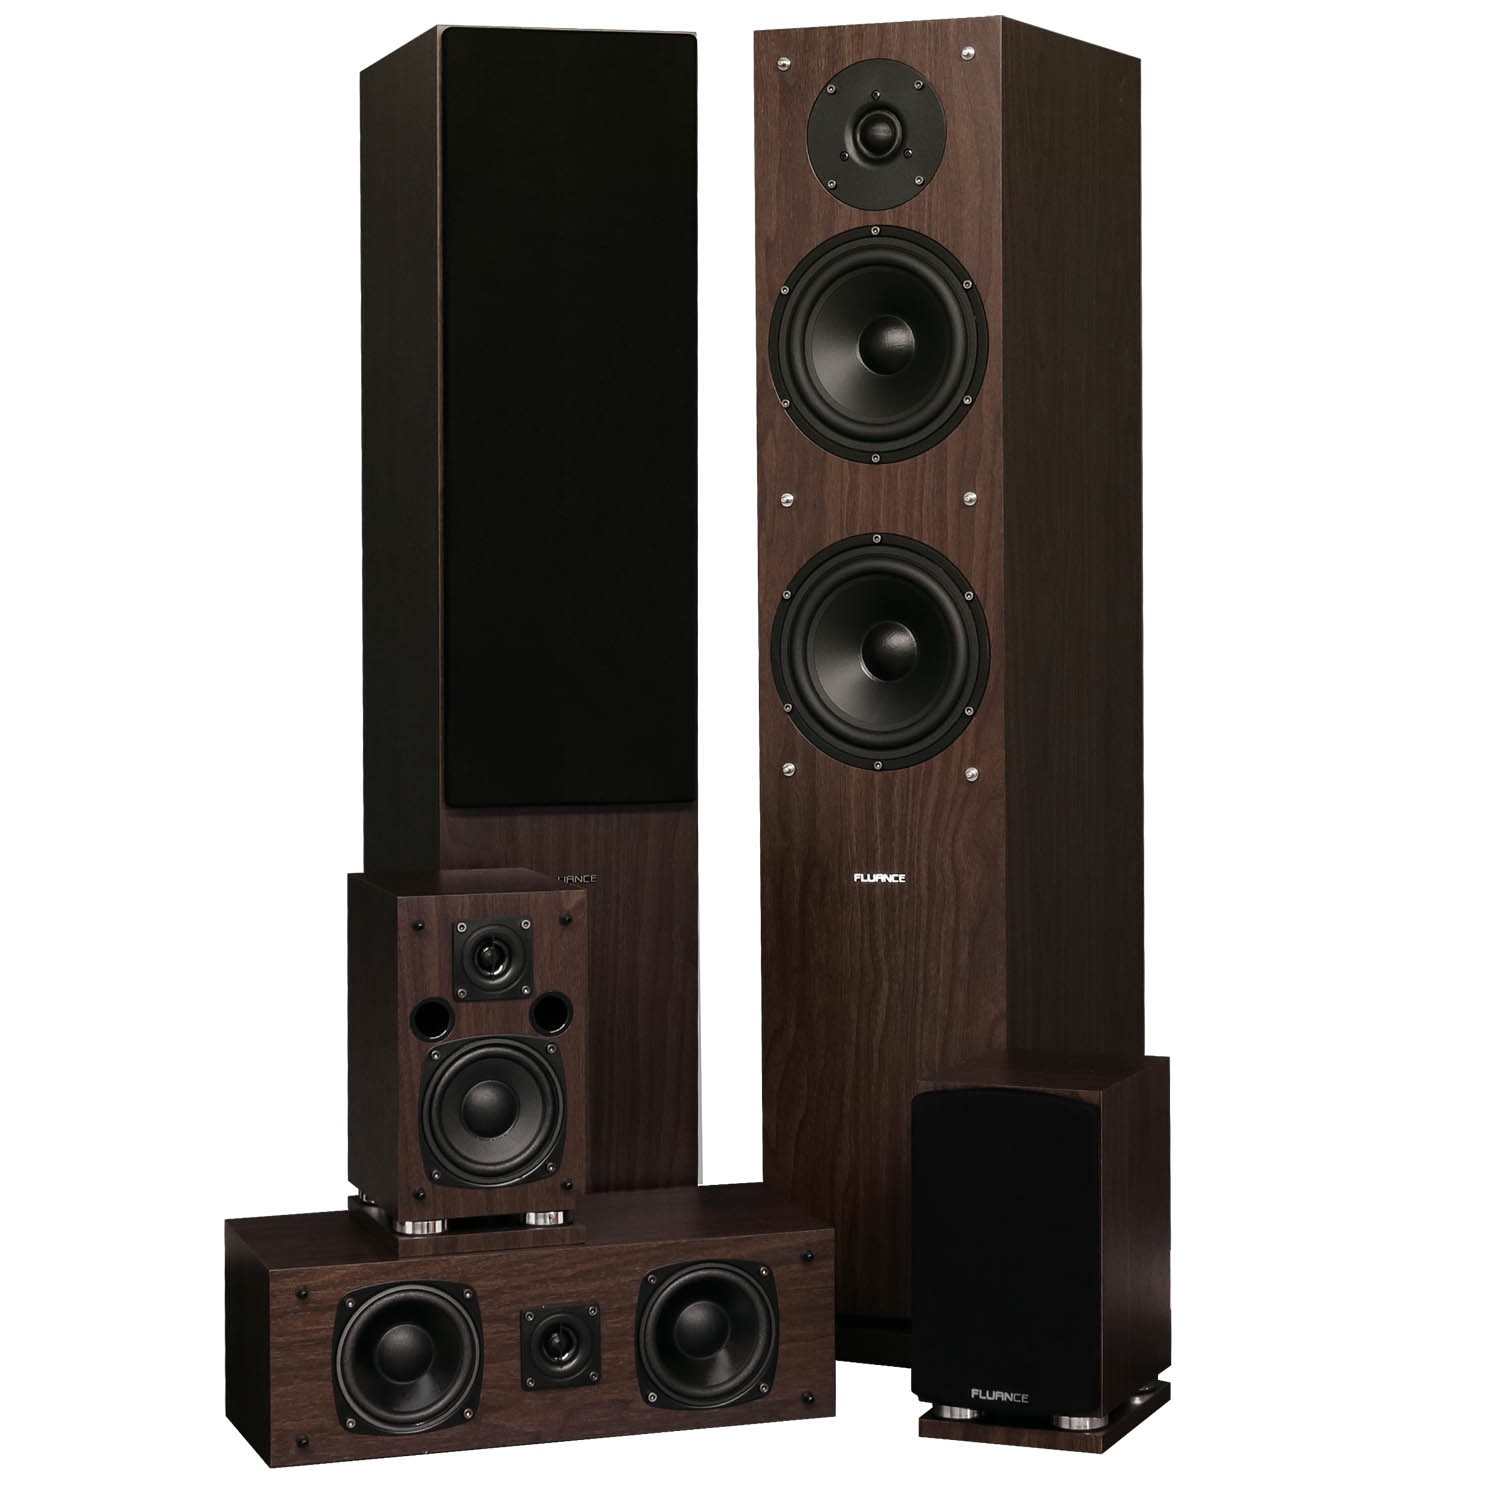 Elite Series Natural Walnut Surround Sound Home Theater 5.0 Channel Speaker System - Alternate